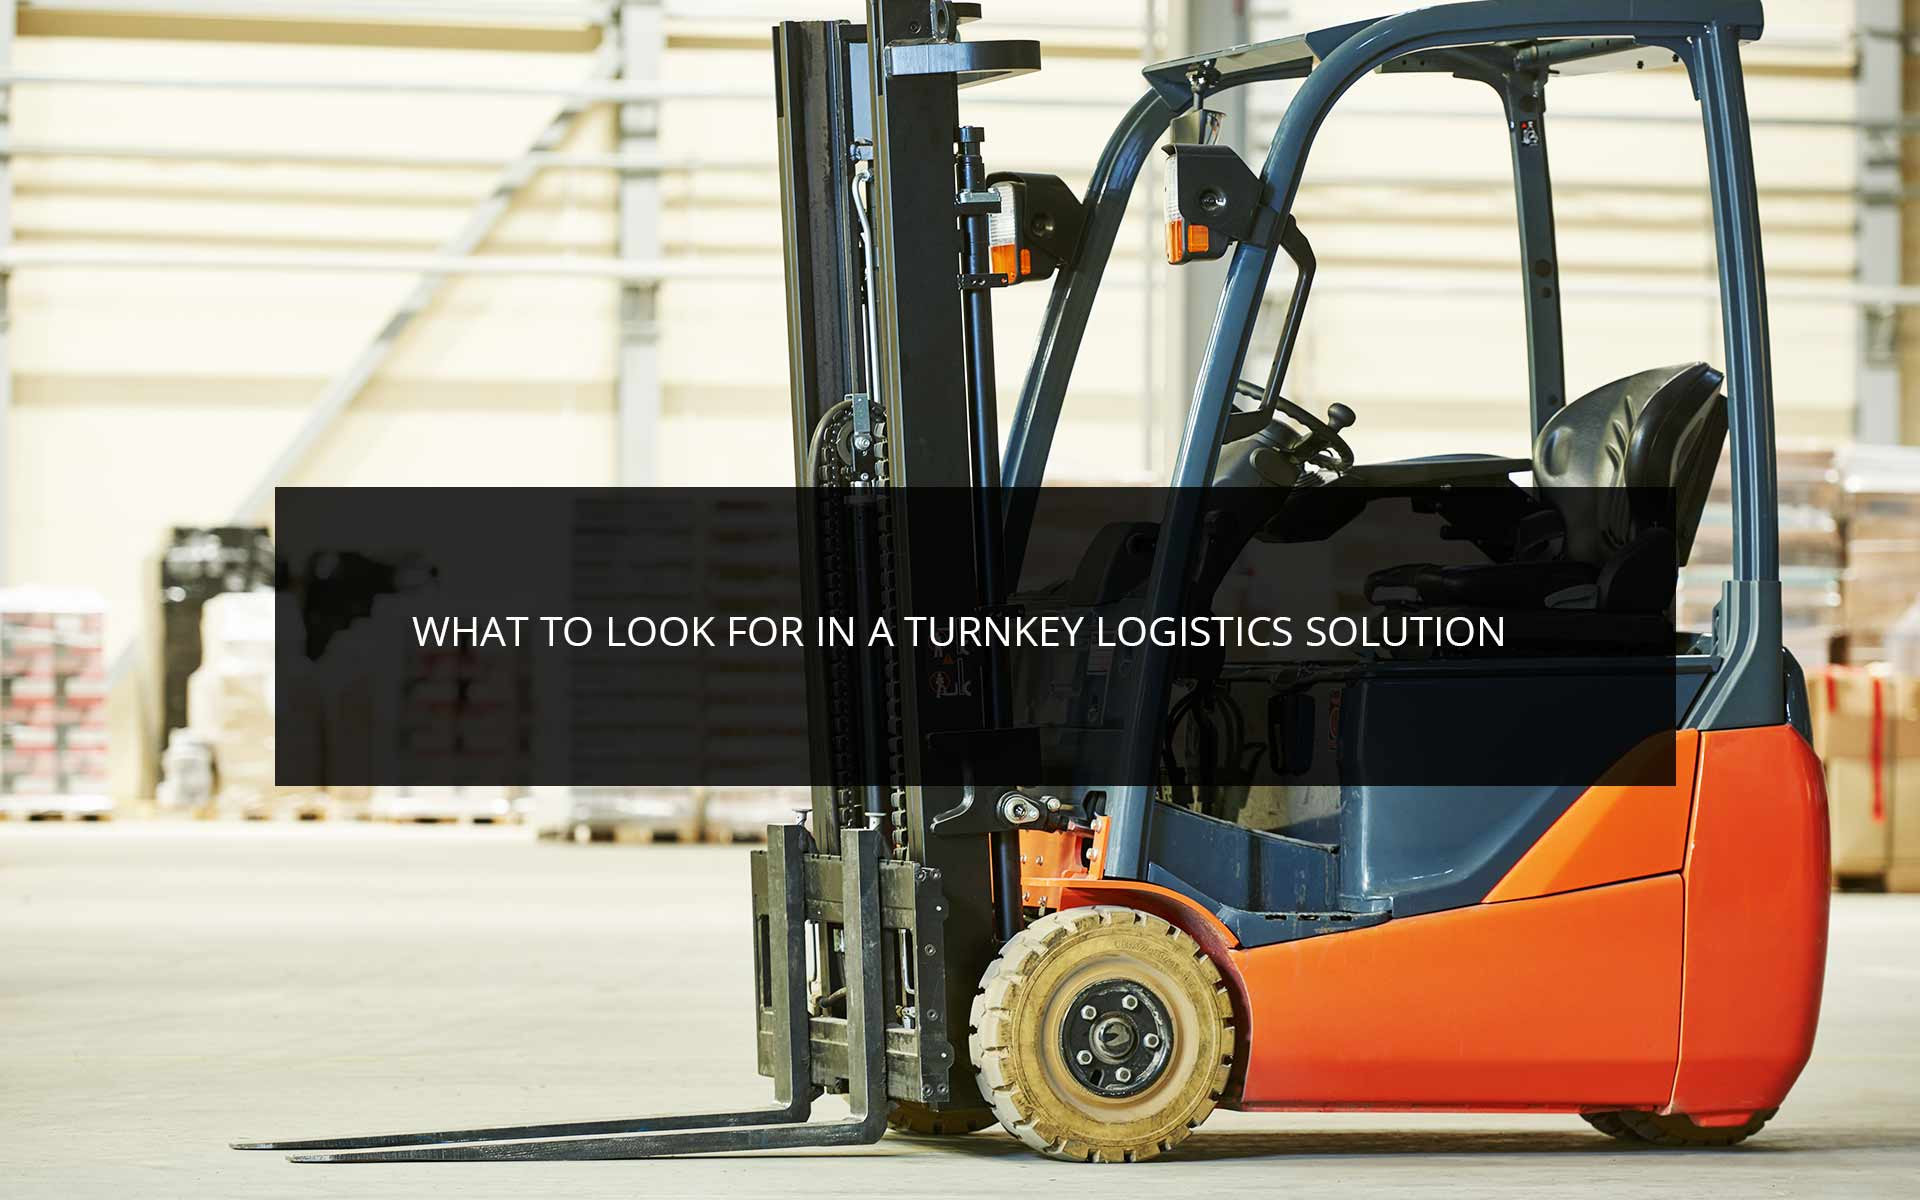 What to Look for in a Turnkey Logistics Solution